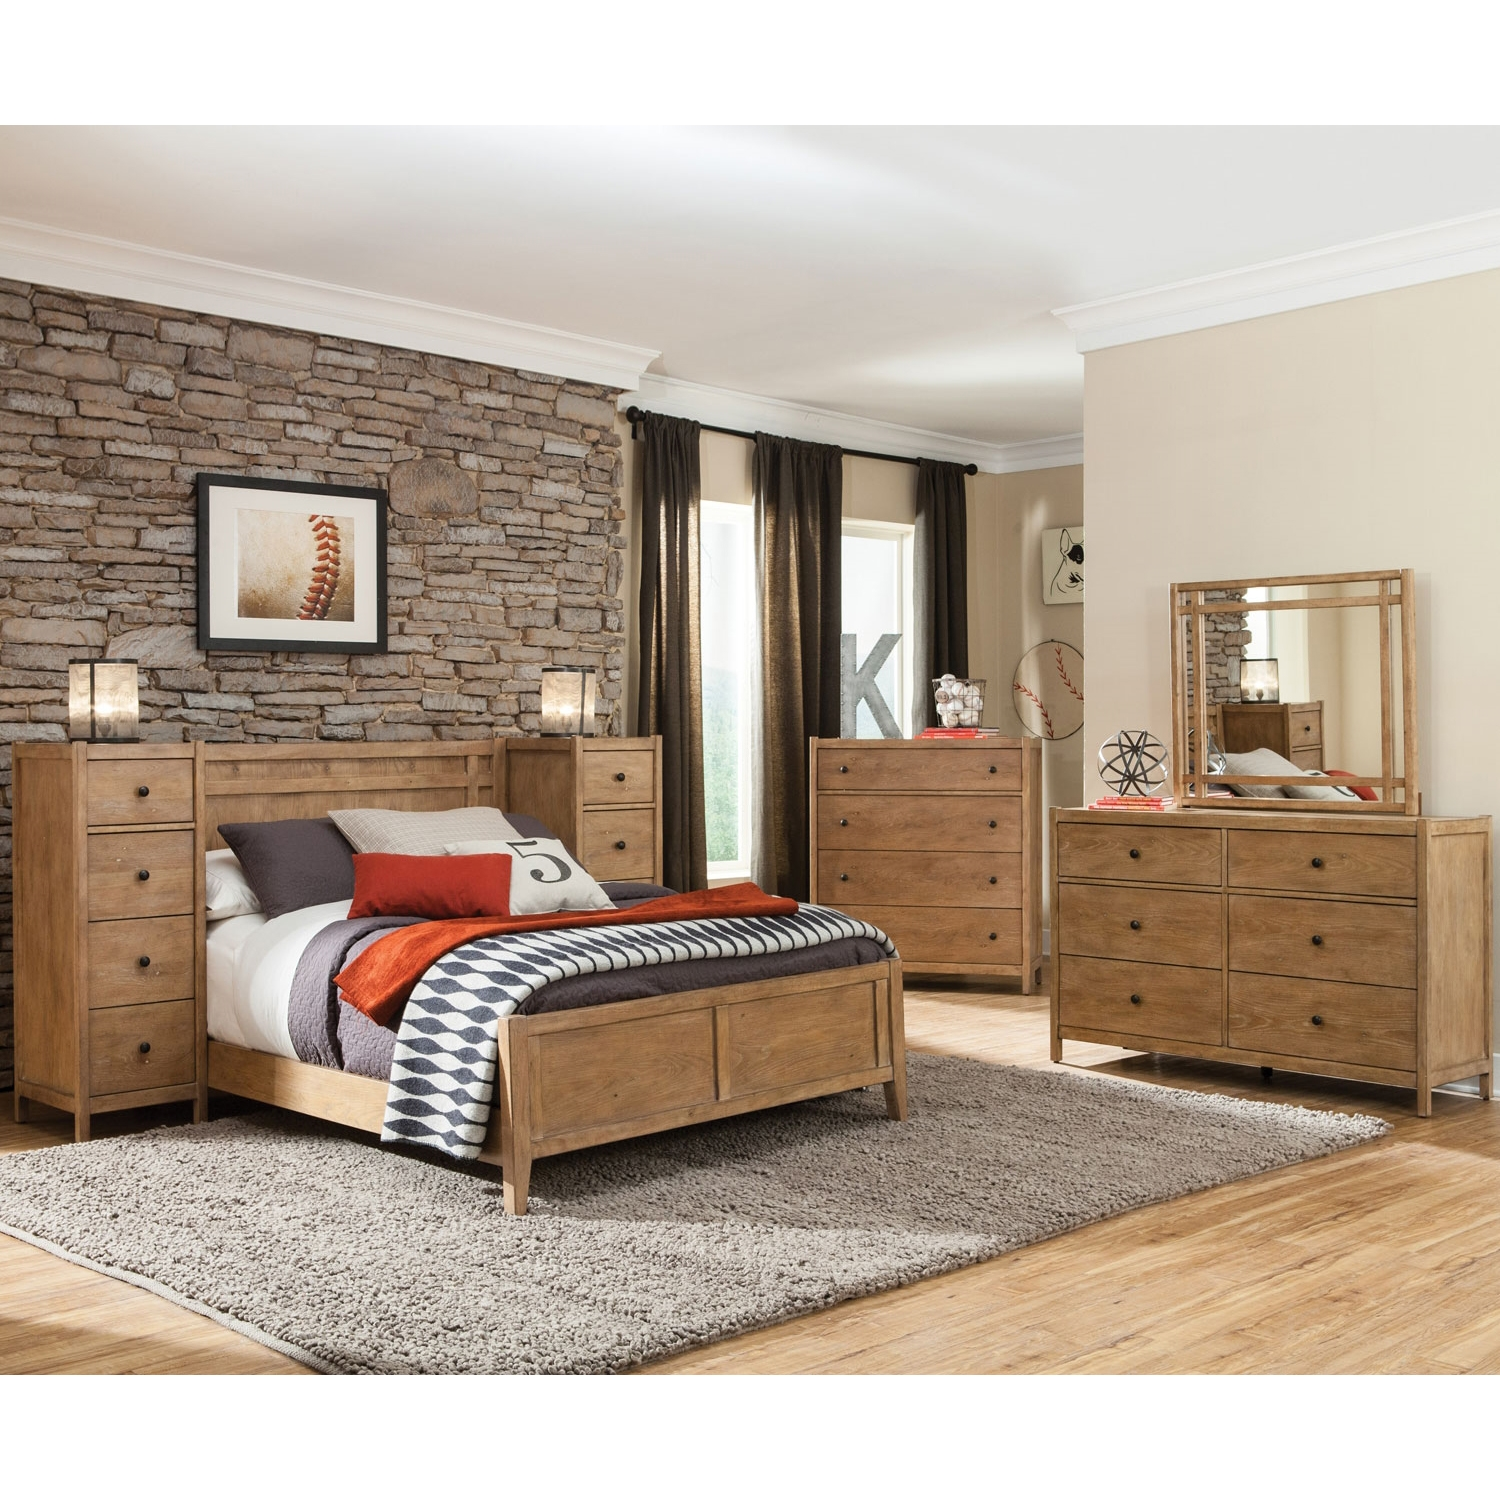 Natural Elements Panel Bed Set - Soft Driftwood with Off-White Glaze - AW-1000-PB-BED-SET